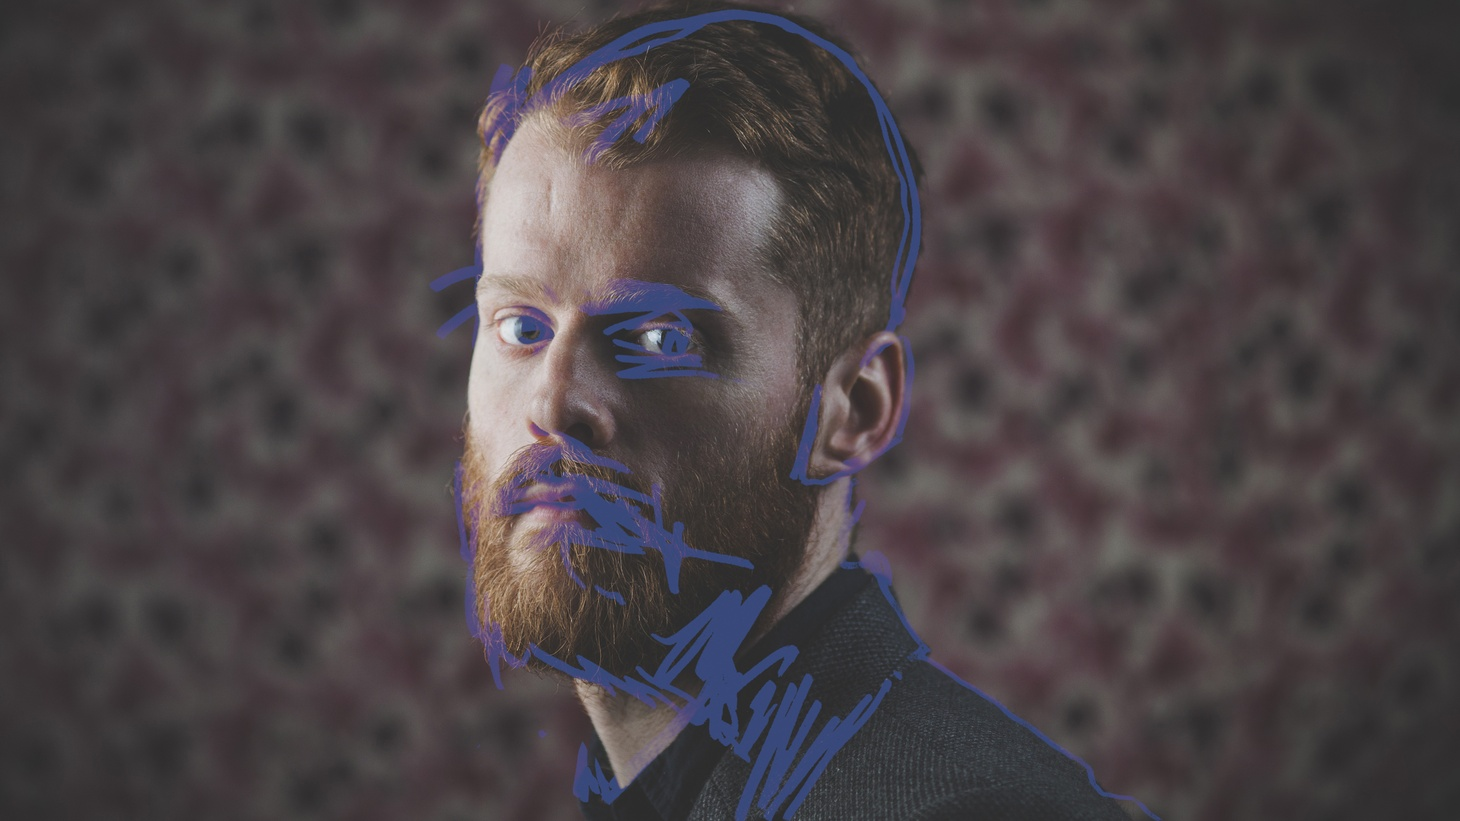 Northern Irish singer/songwriter Ciaran Lavery has been building quite a career for himself, his sophomore album, Let Bad In, sounds like a sure-footed next step in his ascent up the mountain of musical artistry.